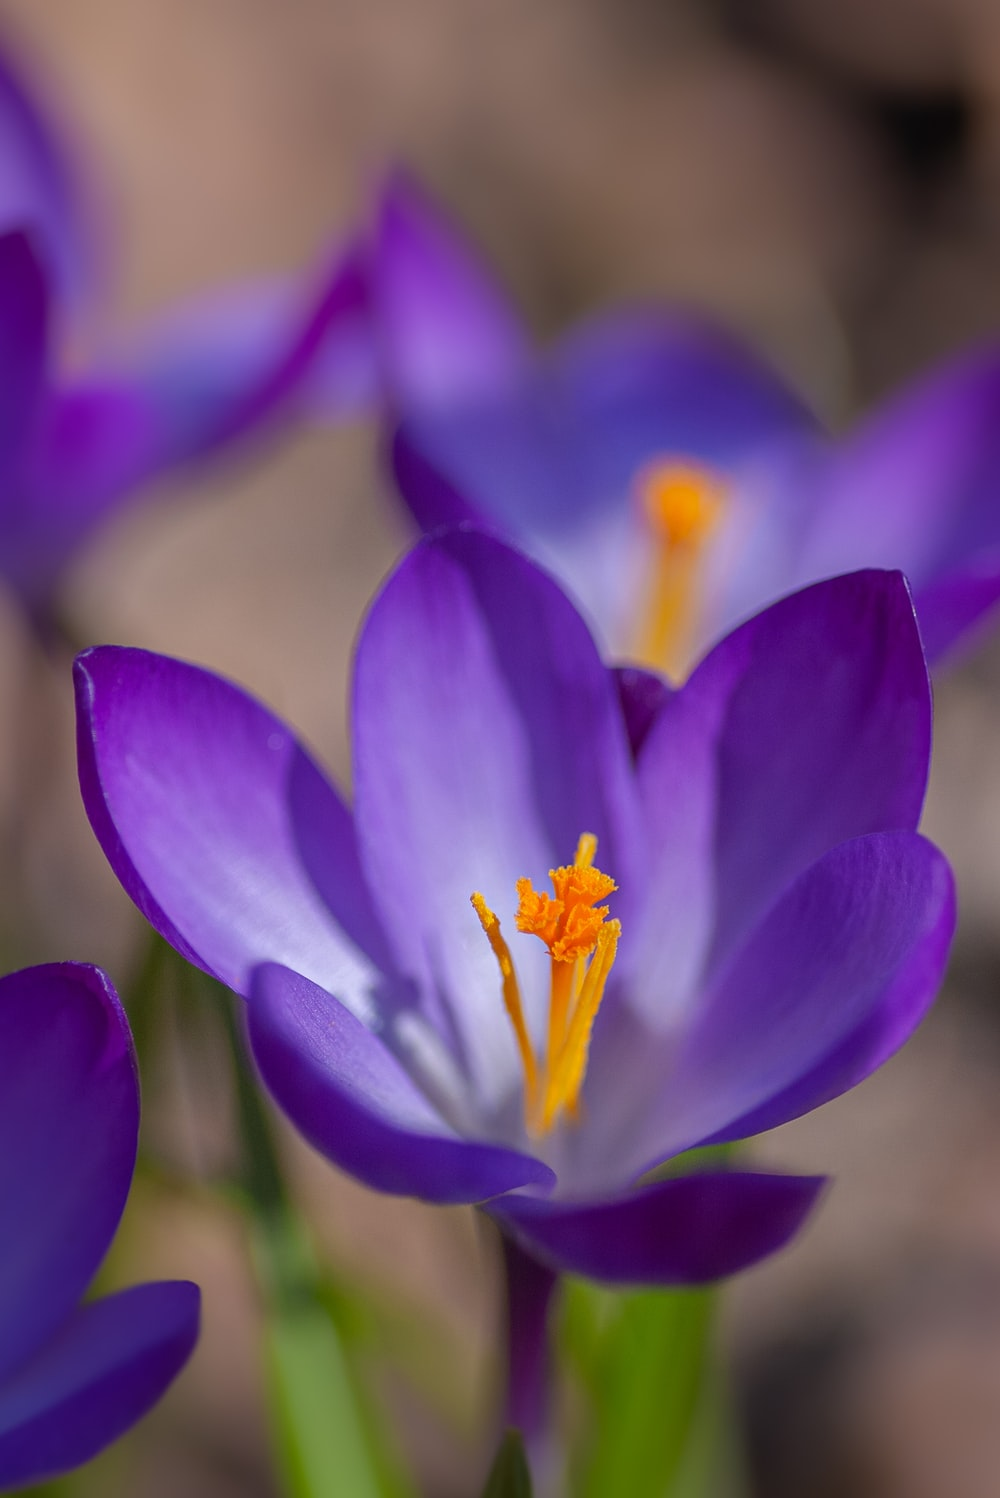 purple crocus in bloom in close up photography